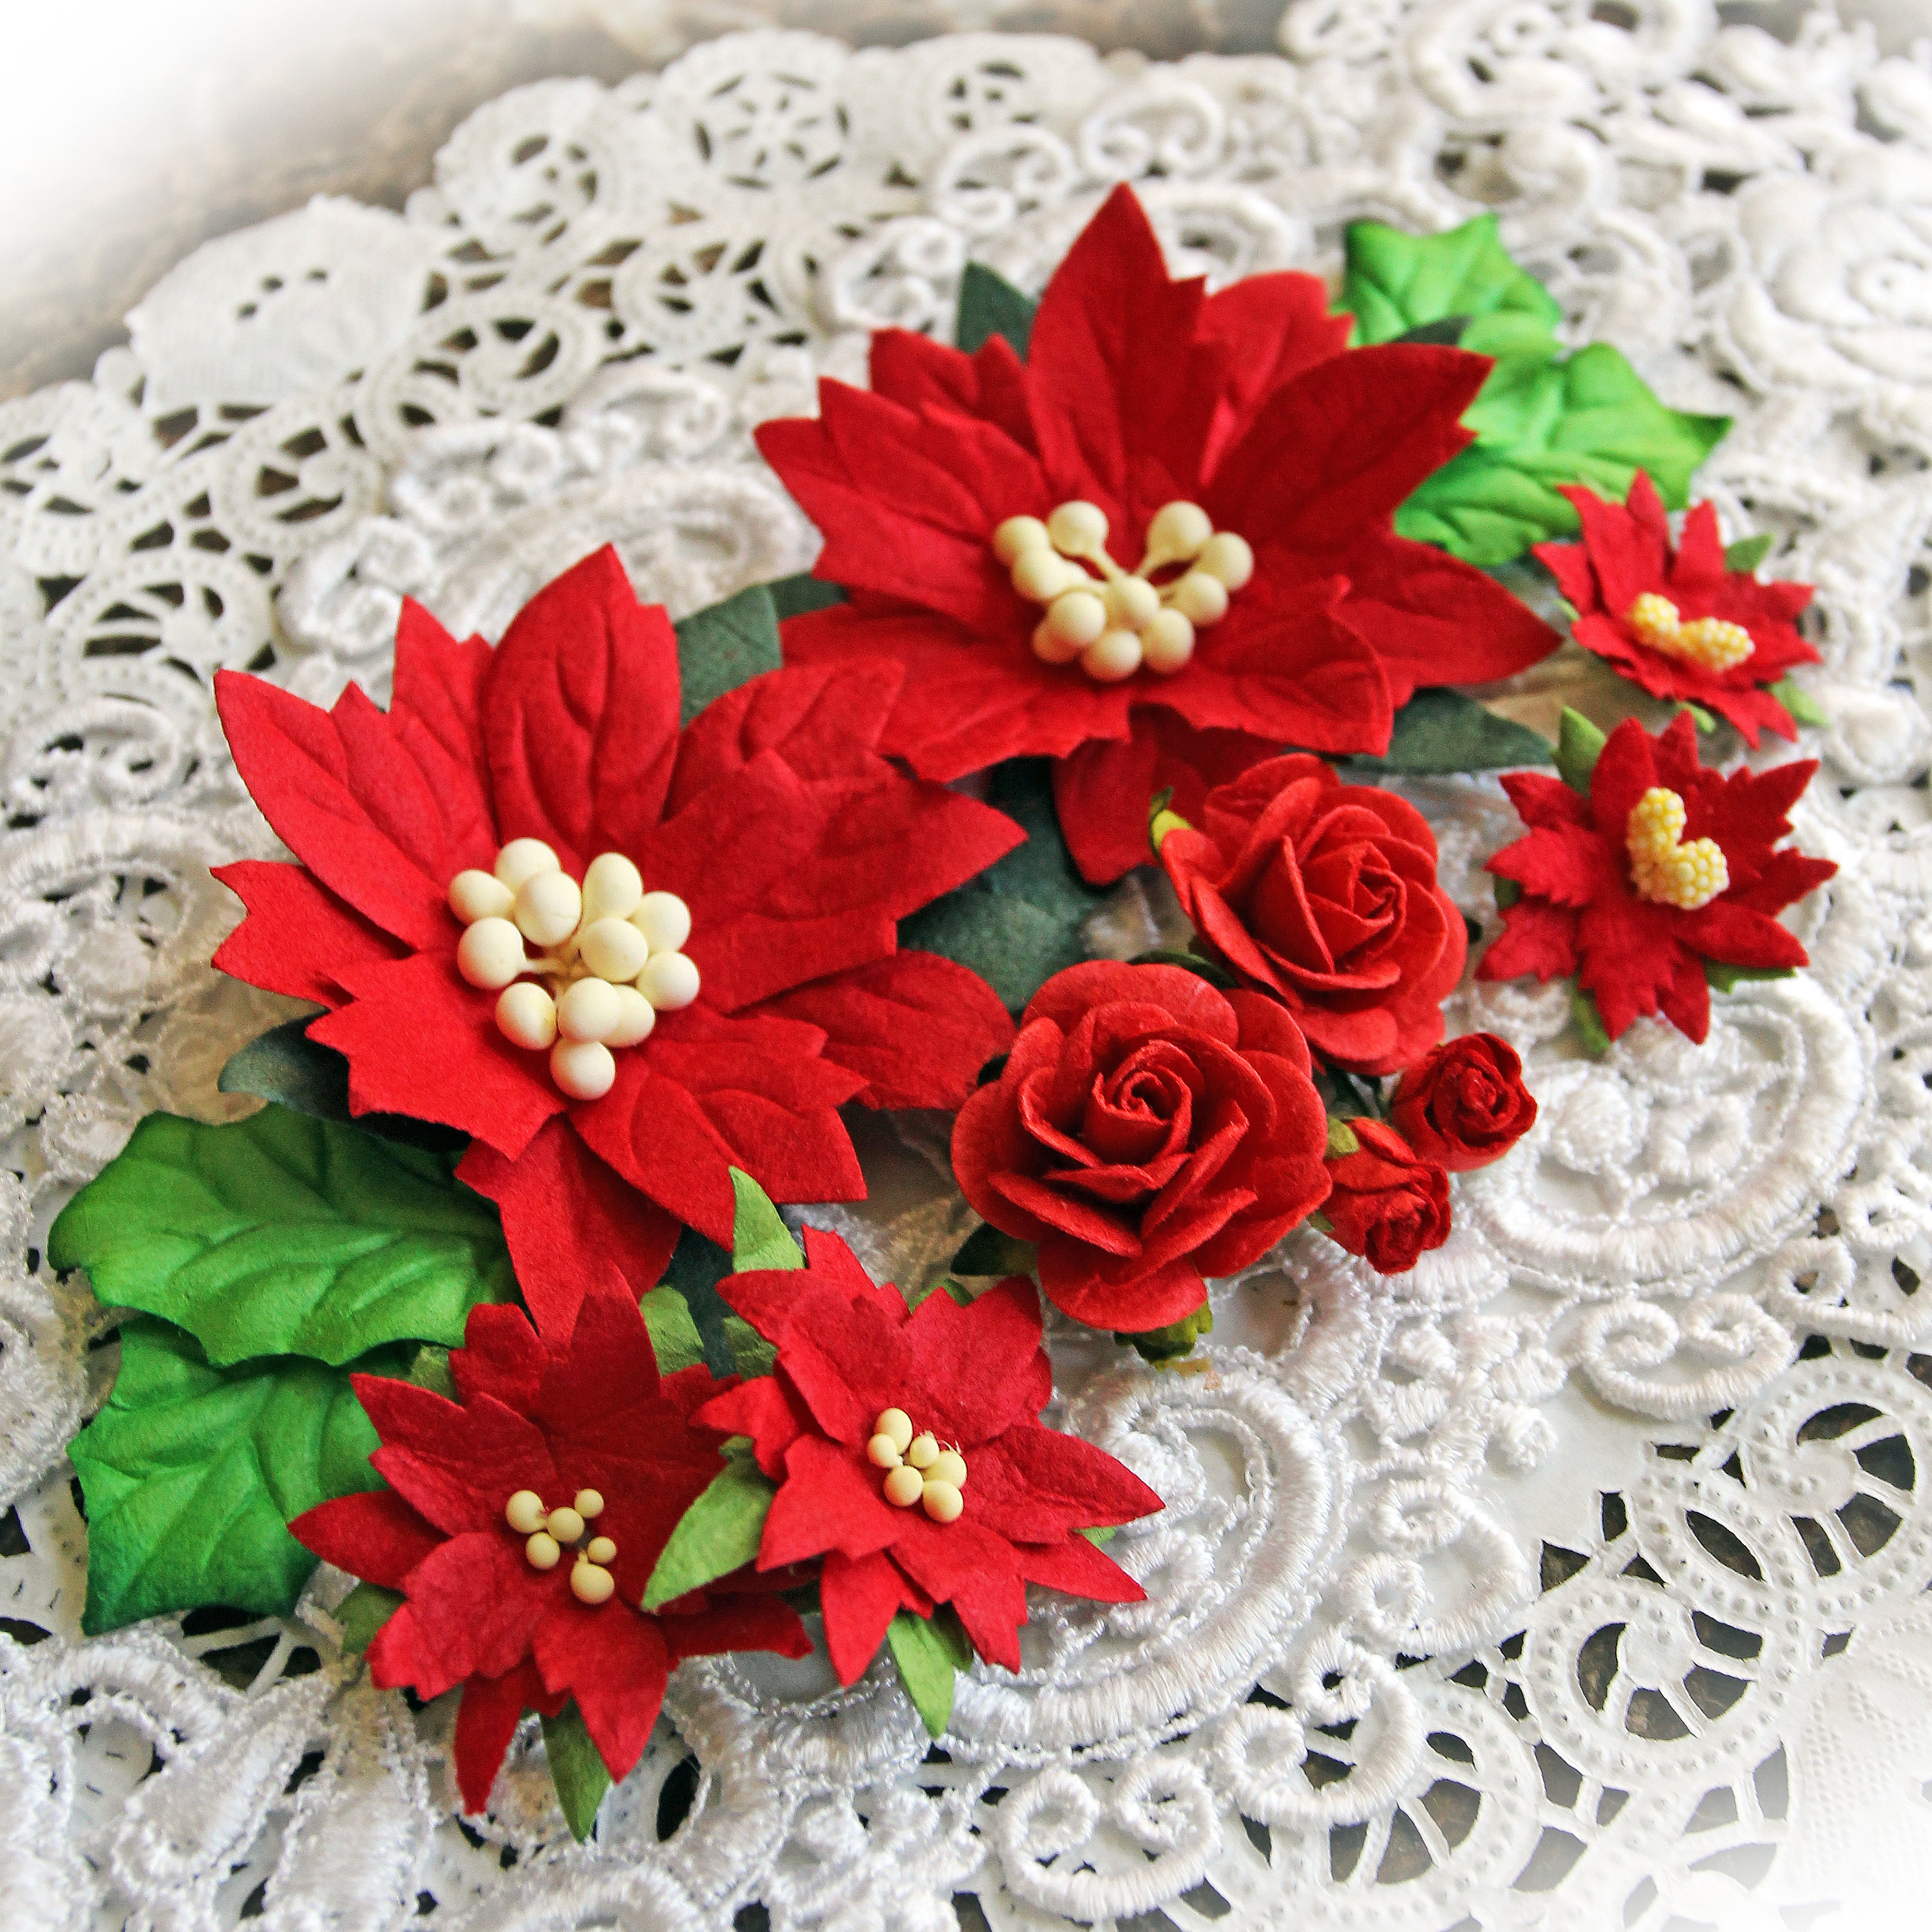 Christmas red mulberry paper poinsettias roses holly leaves tags mini albums or anything your imagination can create with this beautiful red mulberry paper poinsettias mini roses holly leaves set mightylinksfo